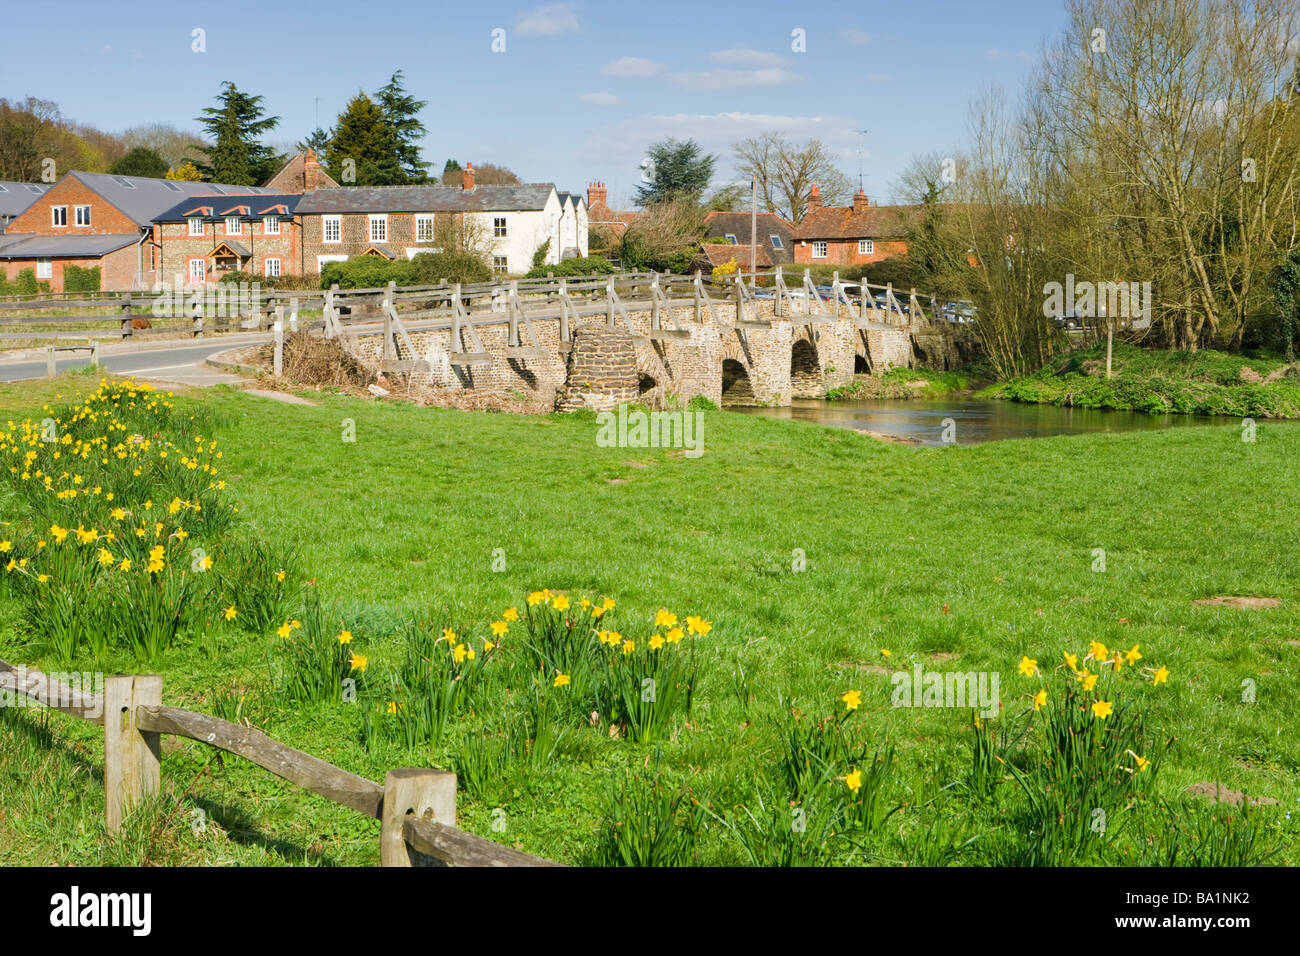 Tilford, Surrey, UK. Bridge over River Wey. - Stock Image